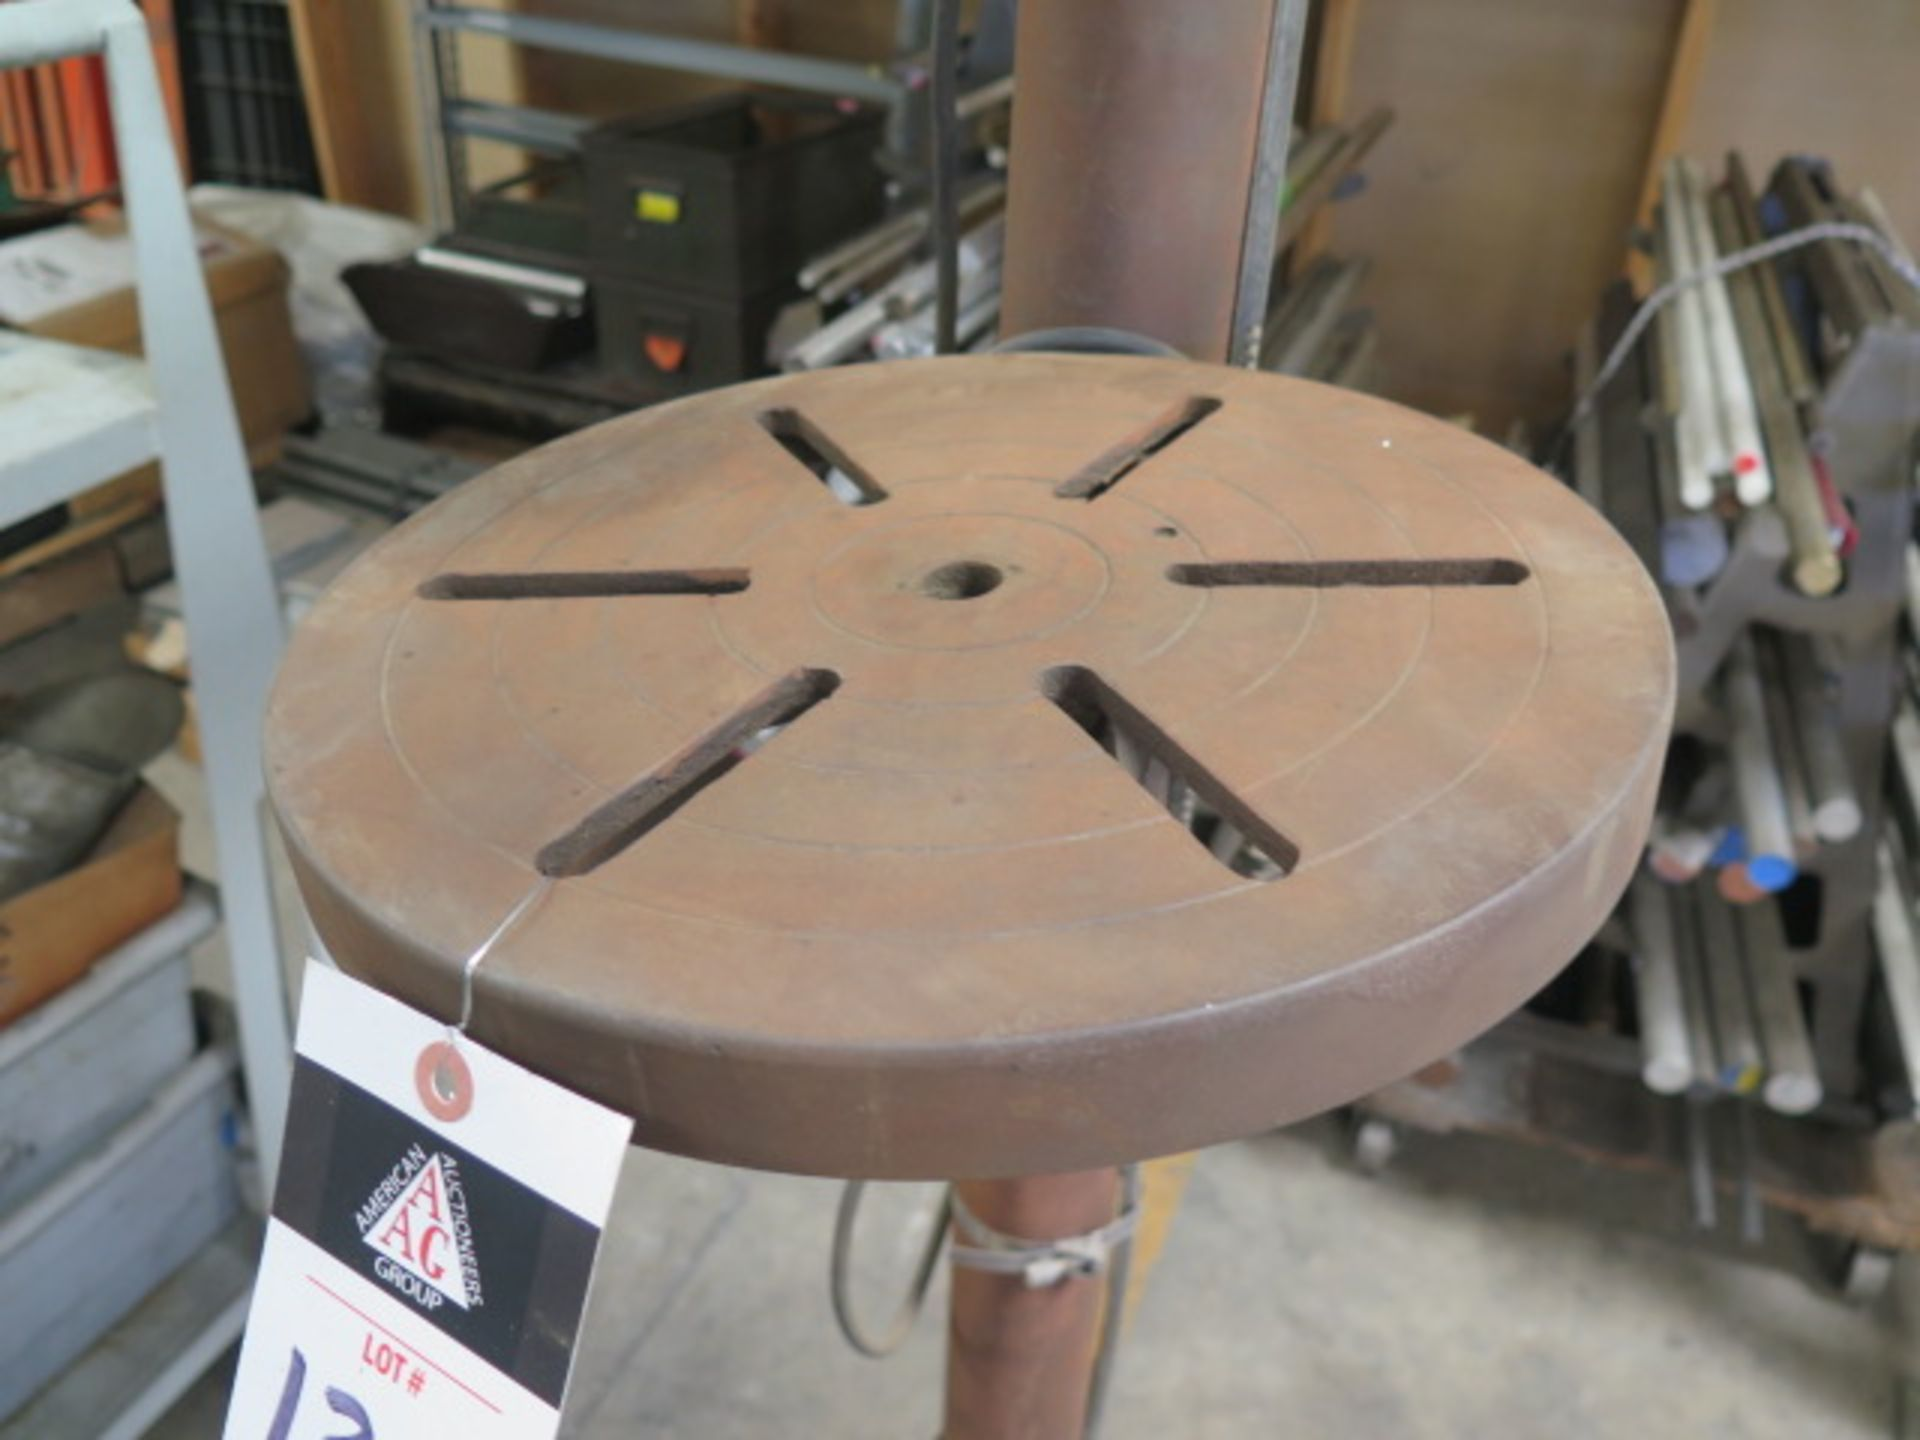 Test Rite Pedestal Drill Press (SOLD AS-IS - NO WARRANTY) - Image 6 of 6